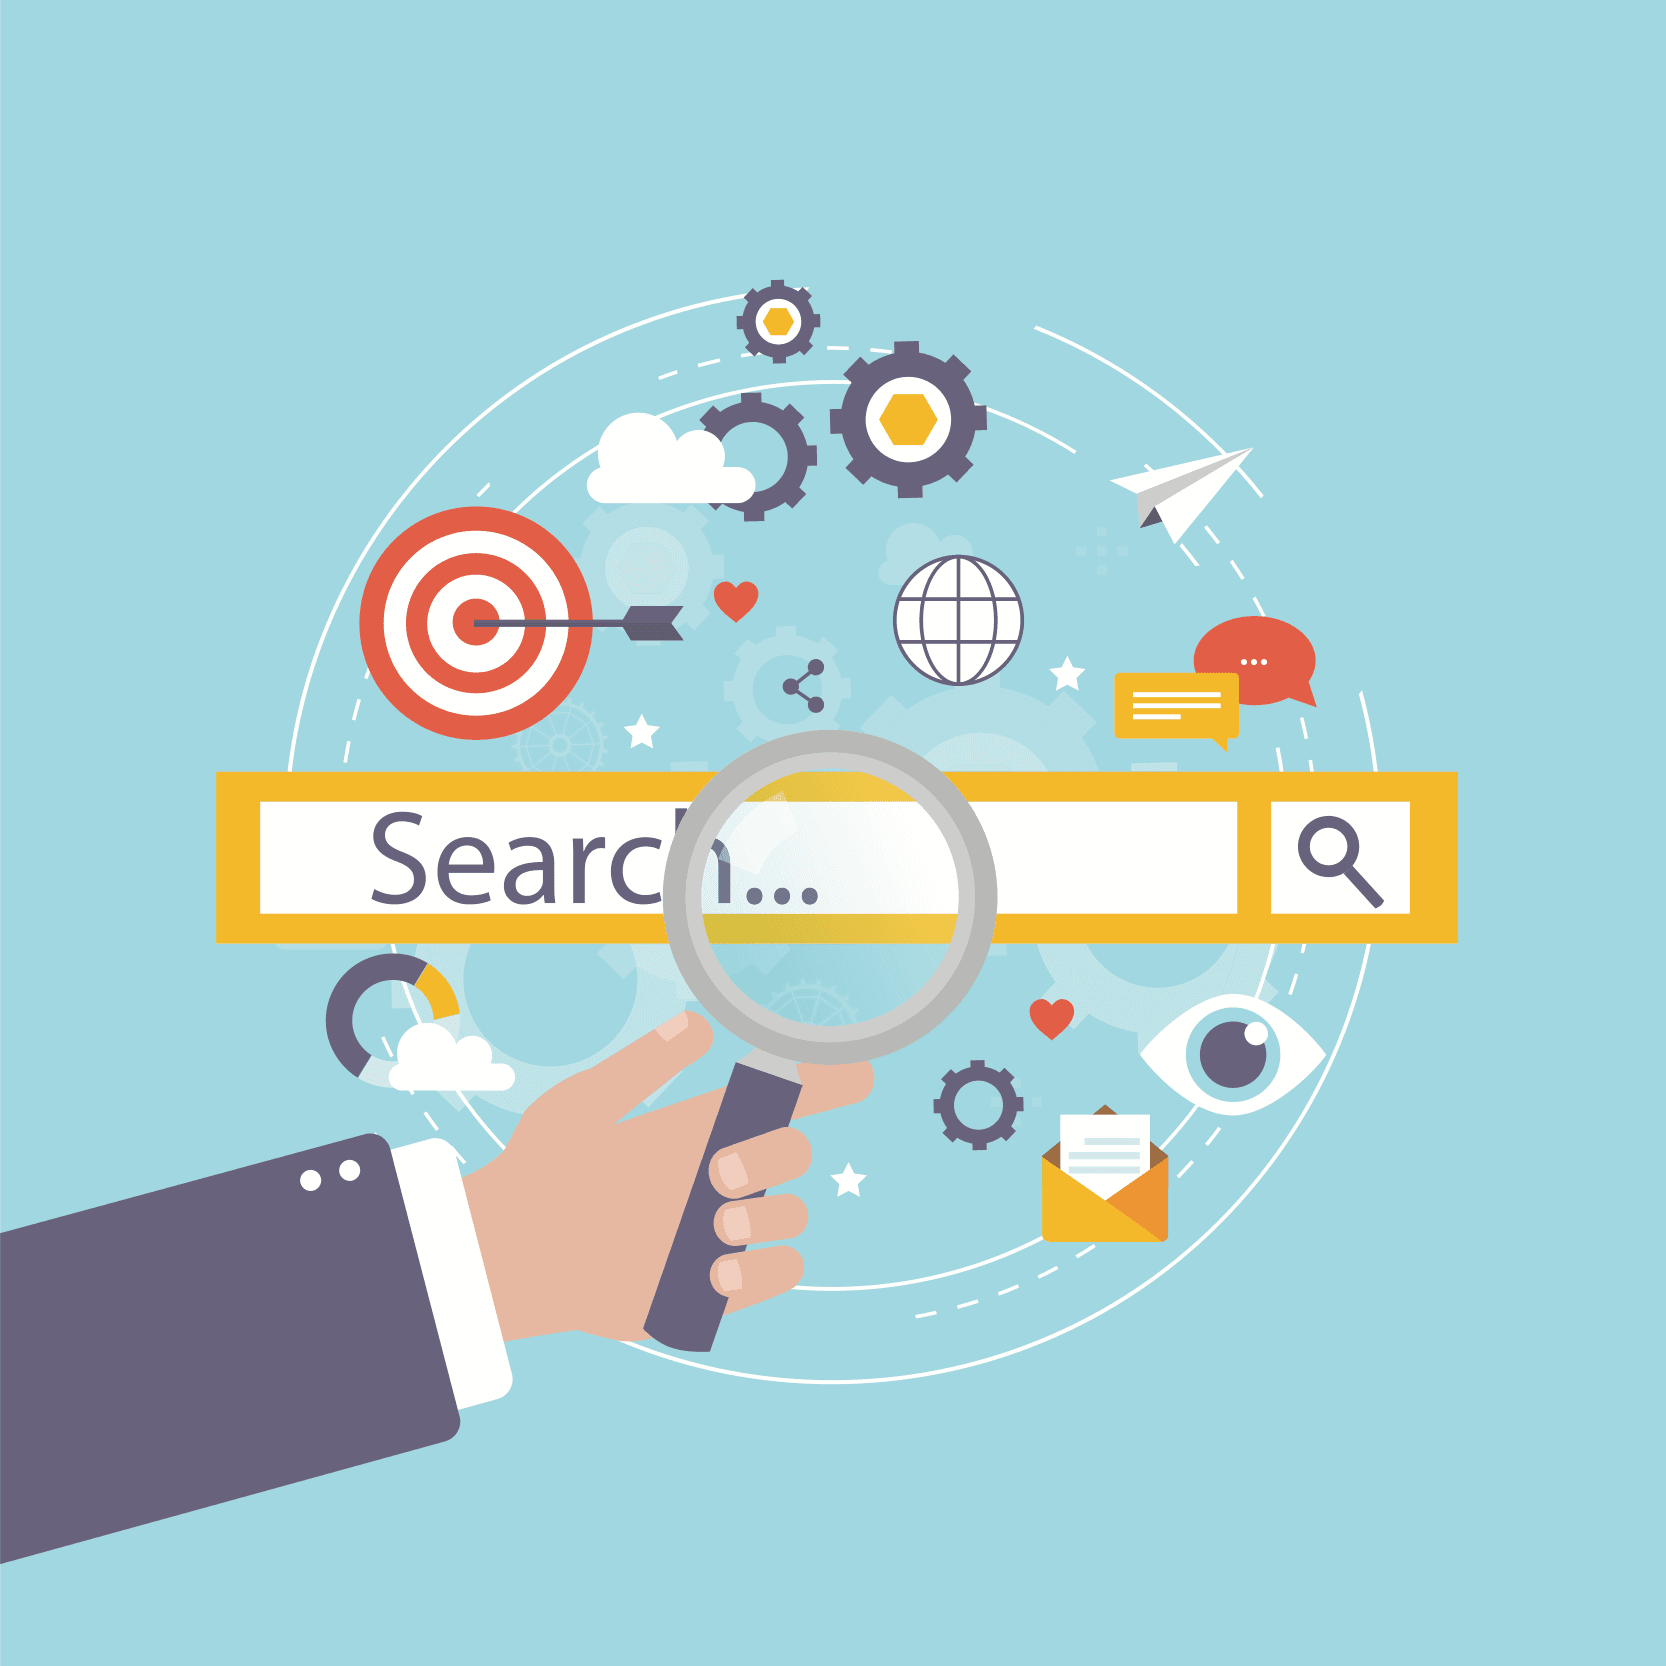 Keyword Research: A Content Marketer's Guide for Getting More Traffic